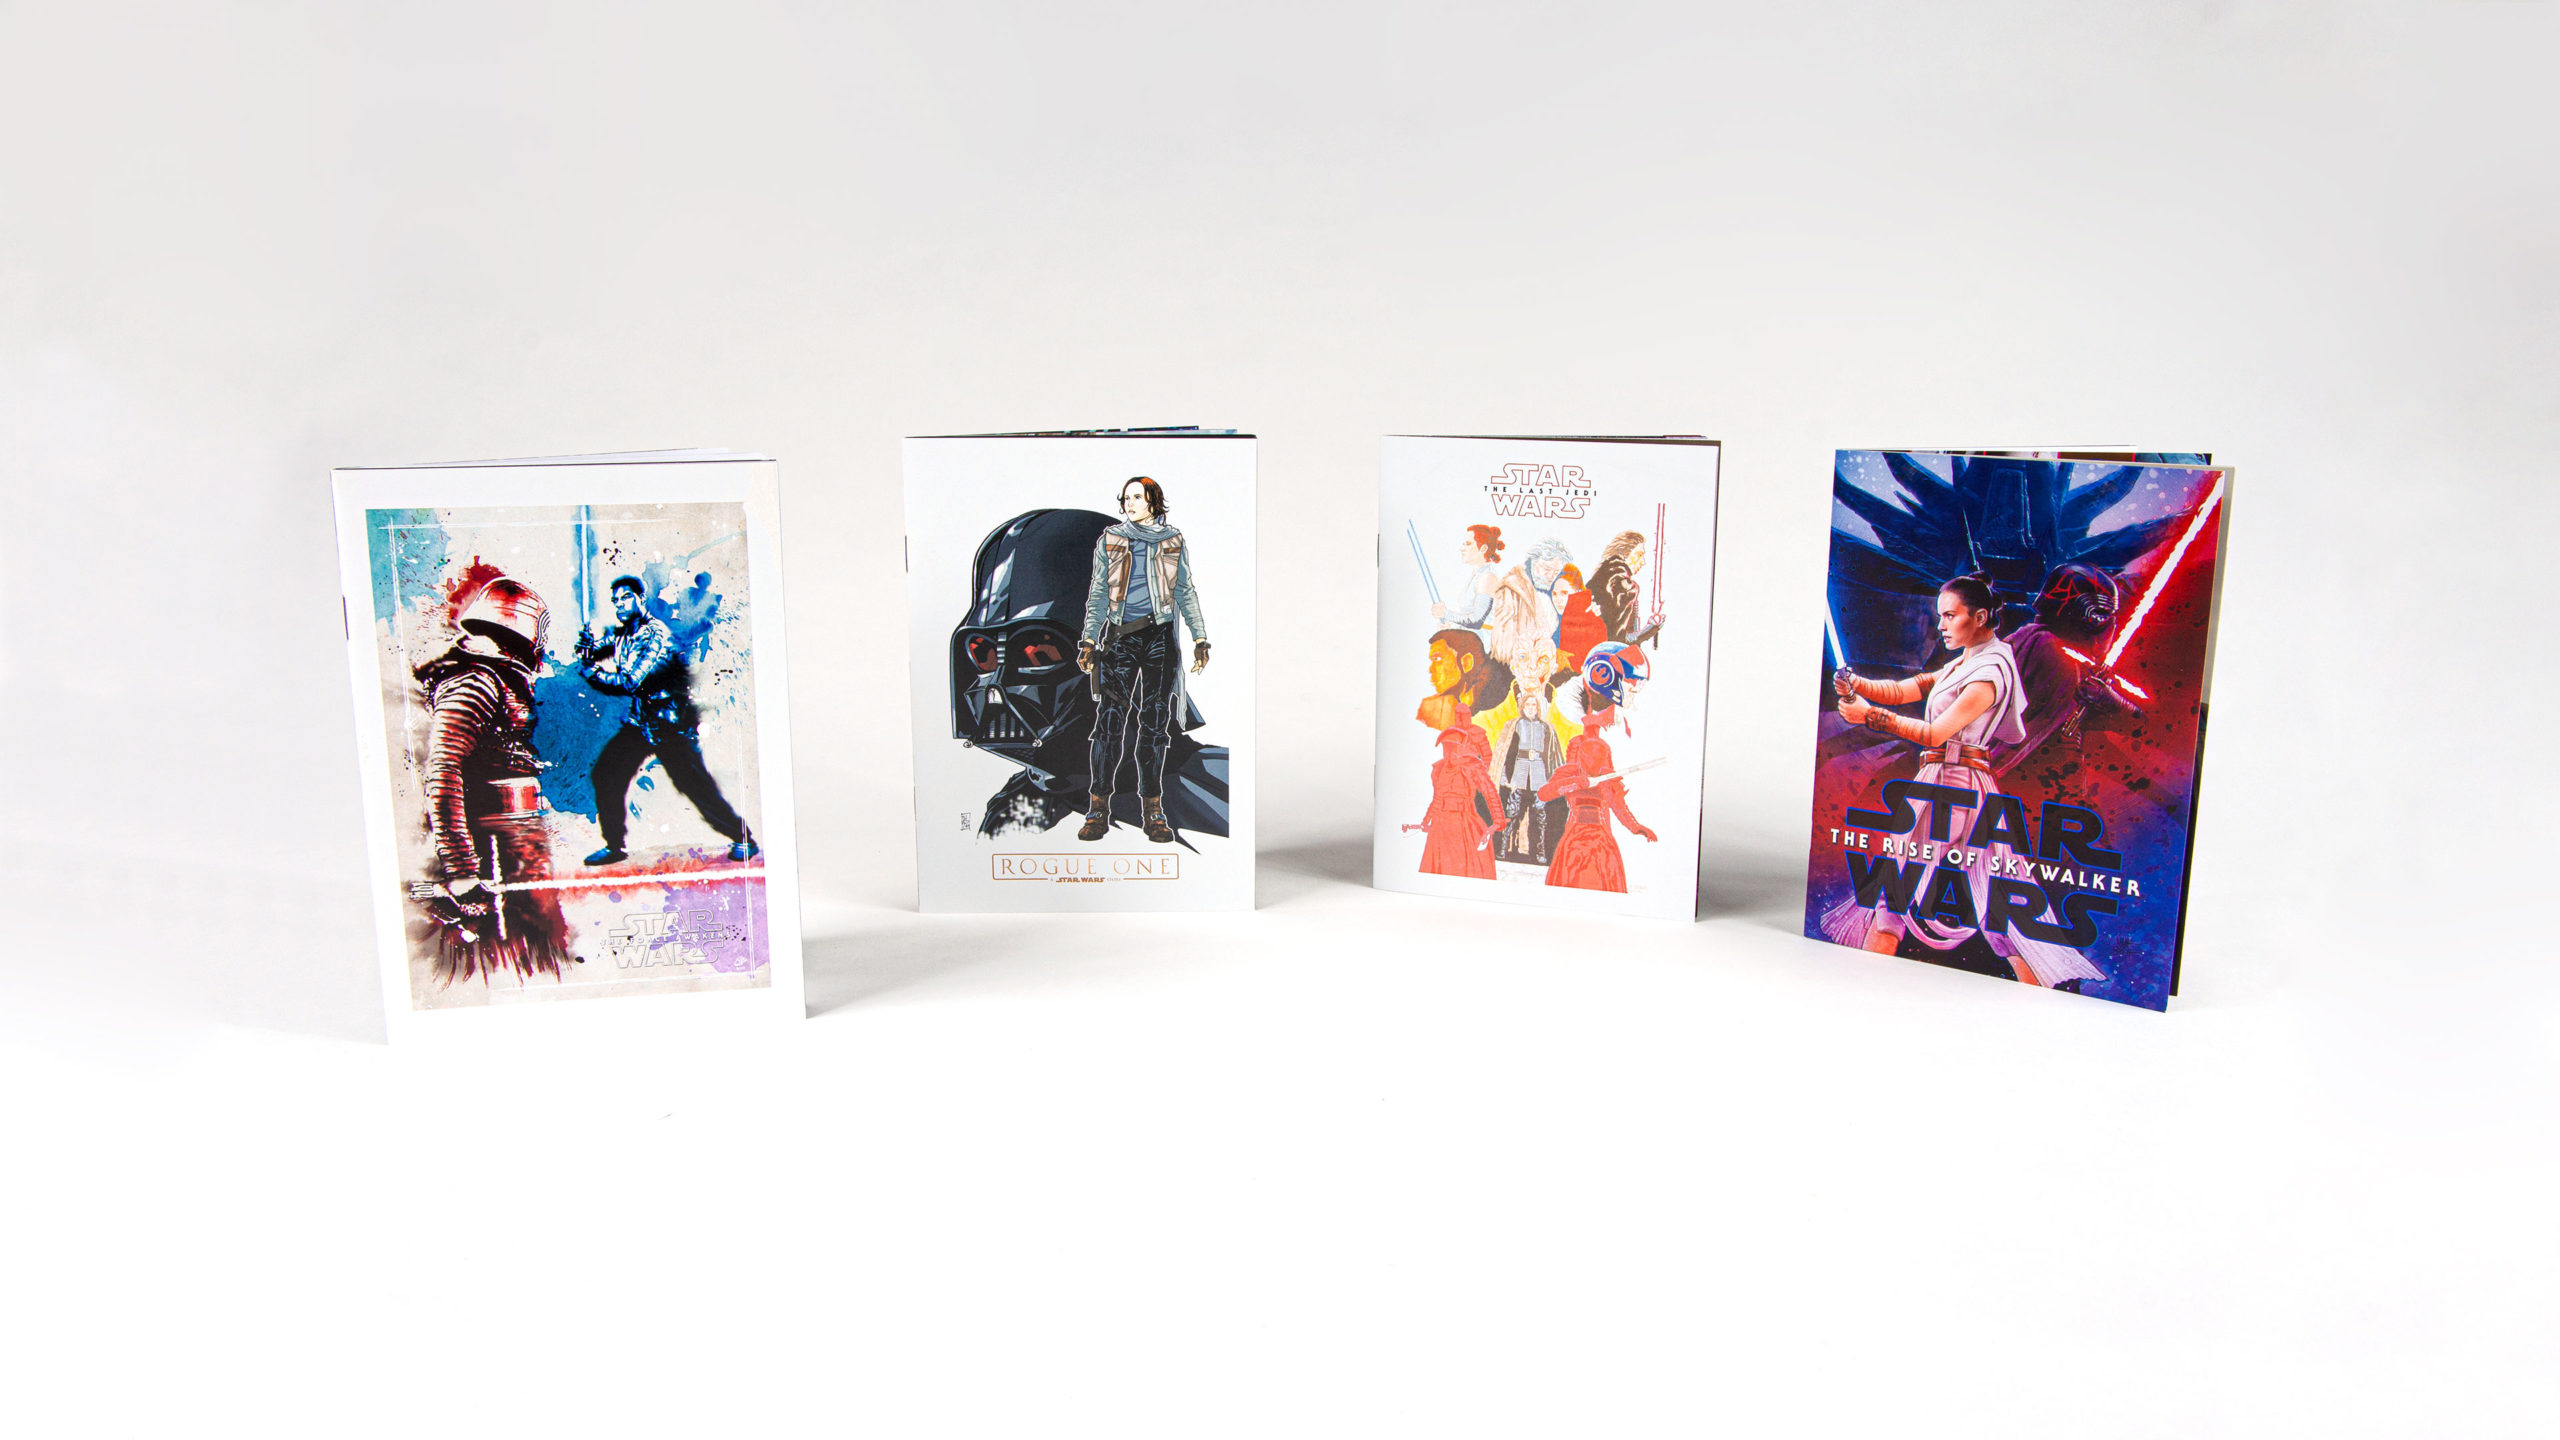 Star Wars - 4 couvertures